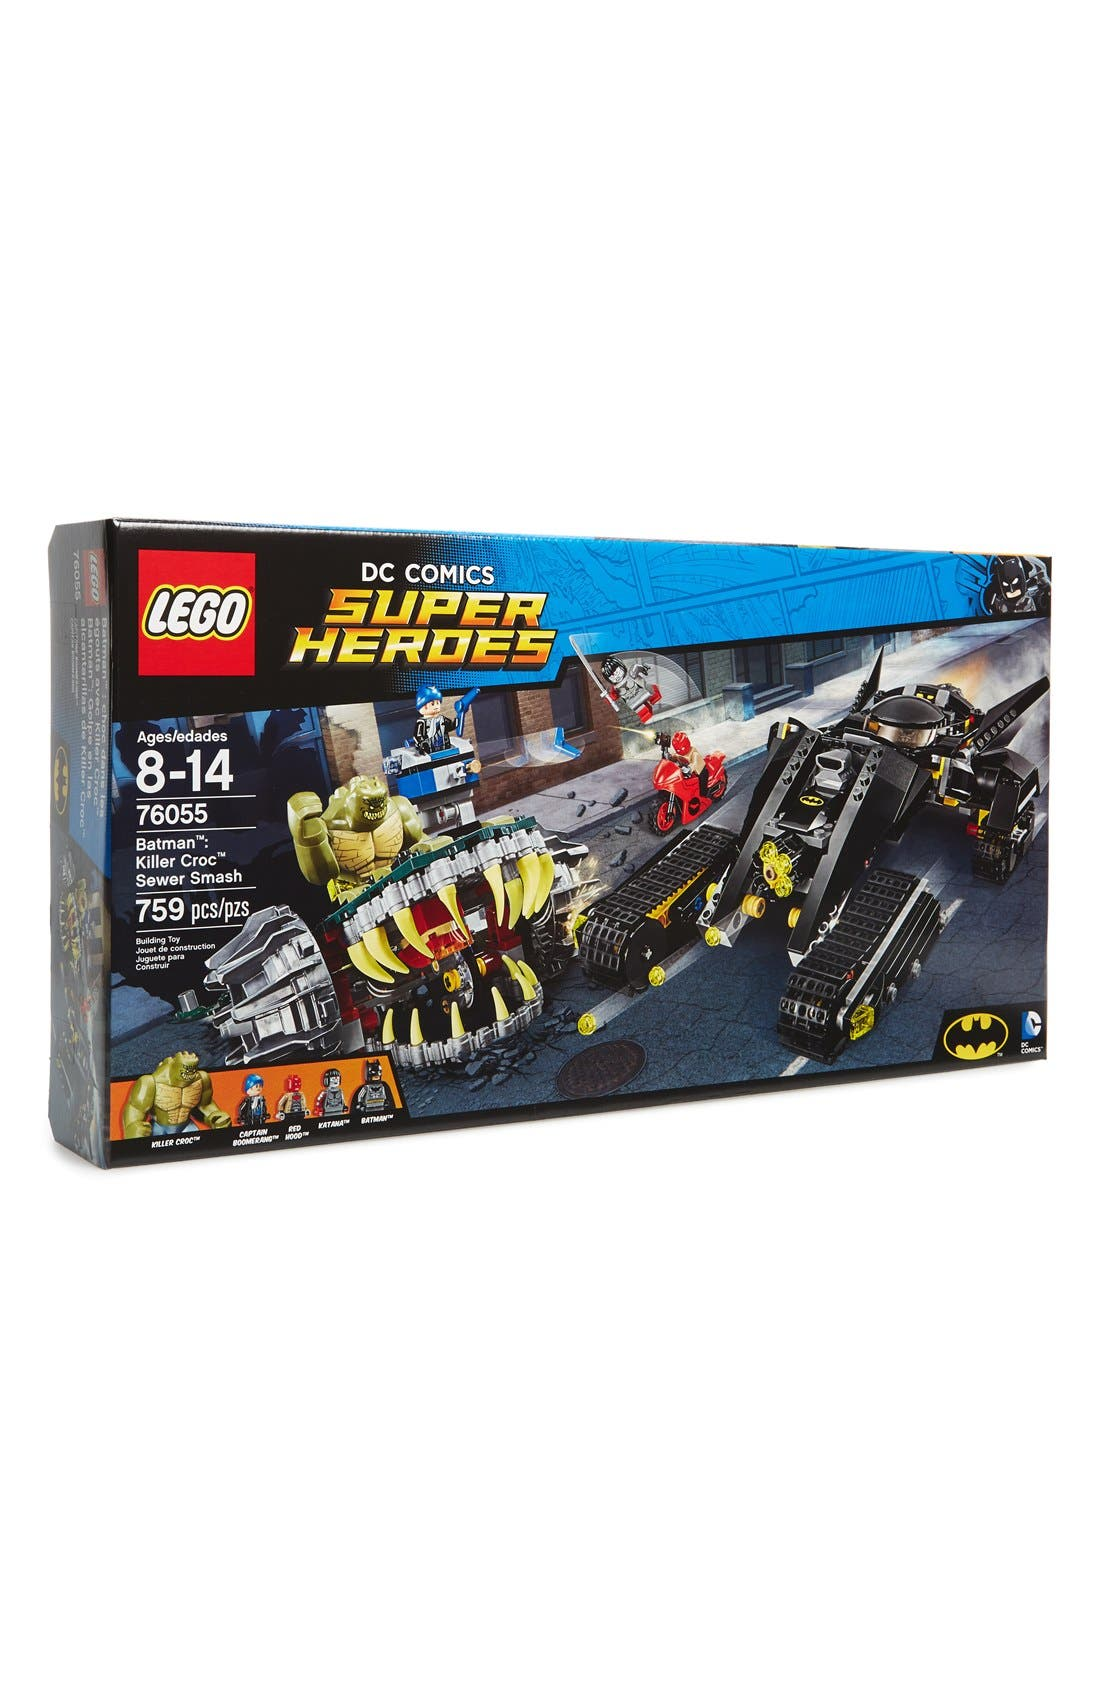 LEGO® DC Comics™ Super Heroes Batman™: Killer Croc™ Sewer Smash - 76055